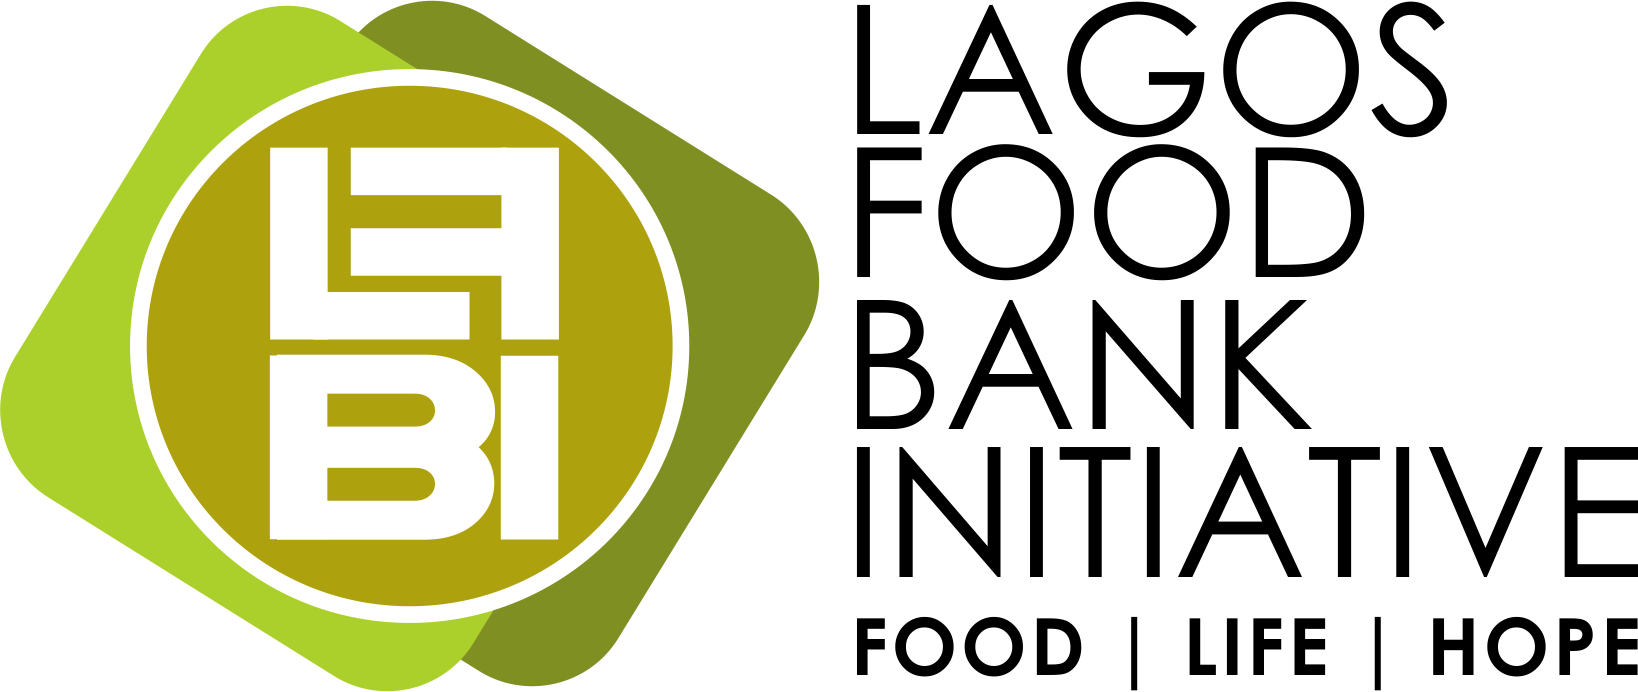 Lagos Food Bank, Nigeria, Africa